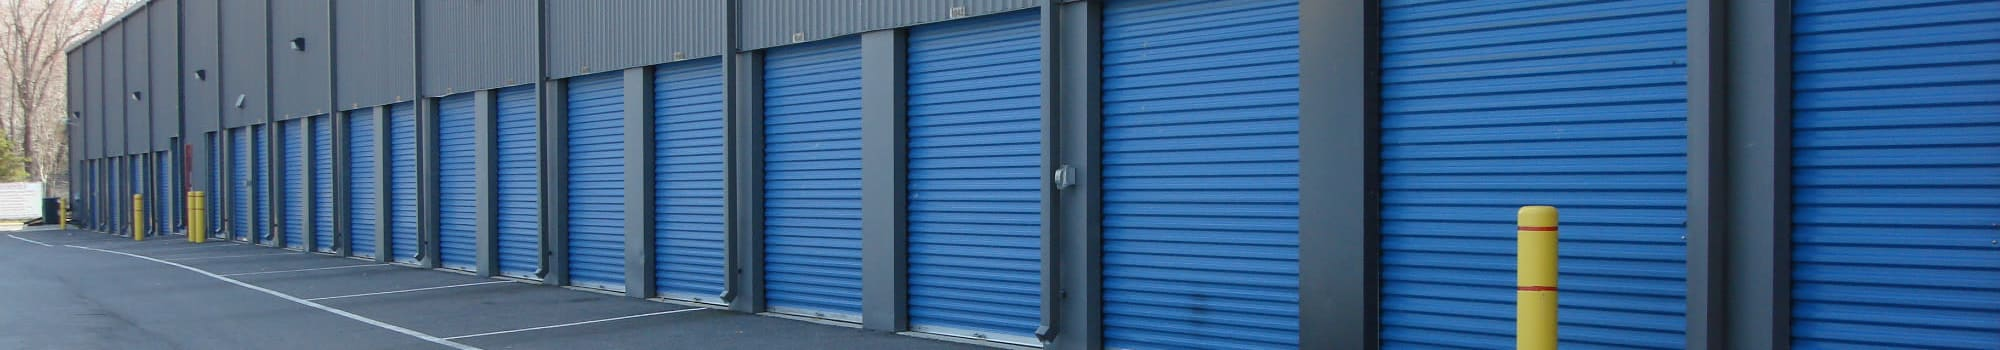 Self storage units in Bel Air